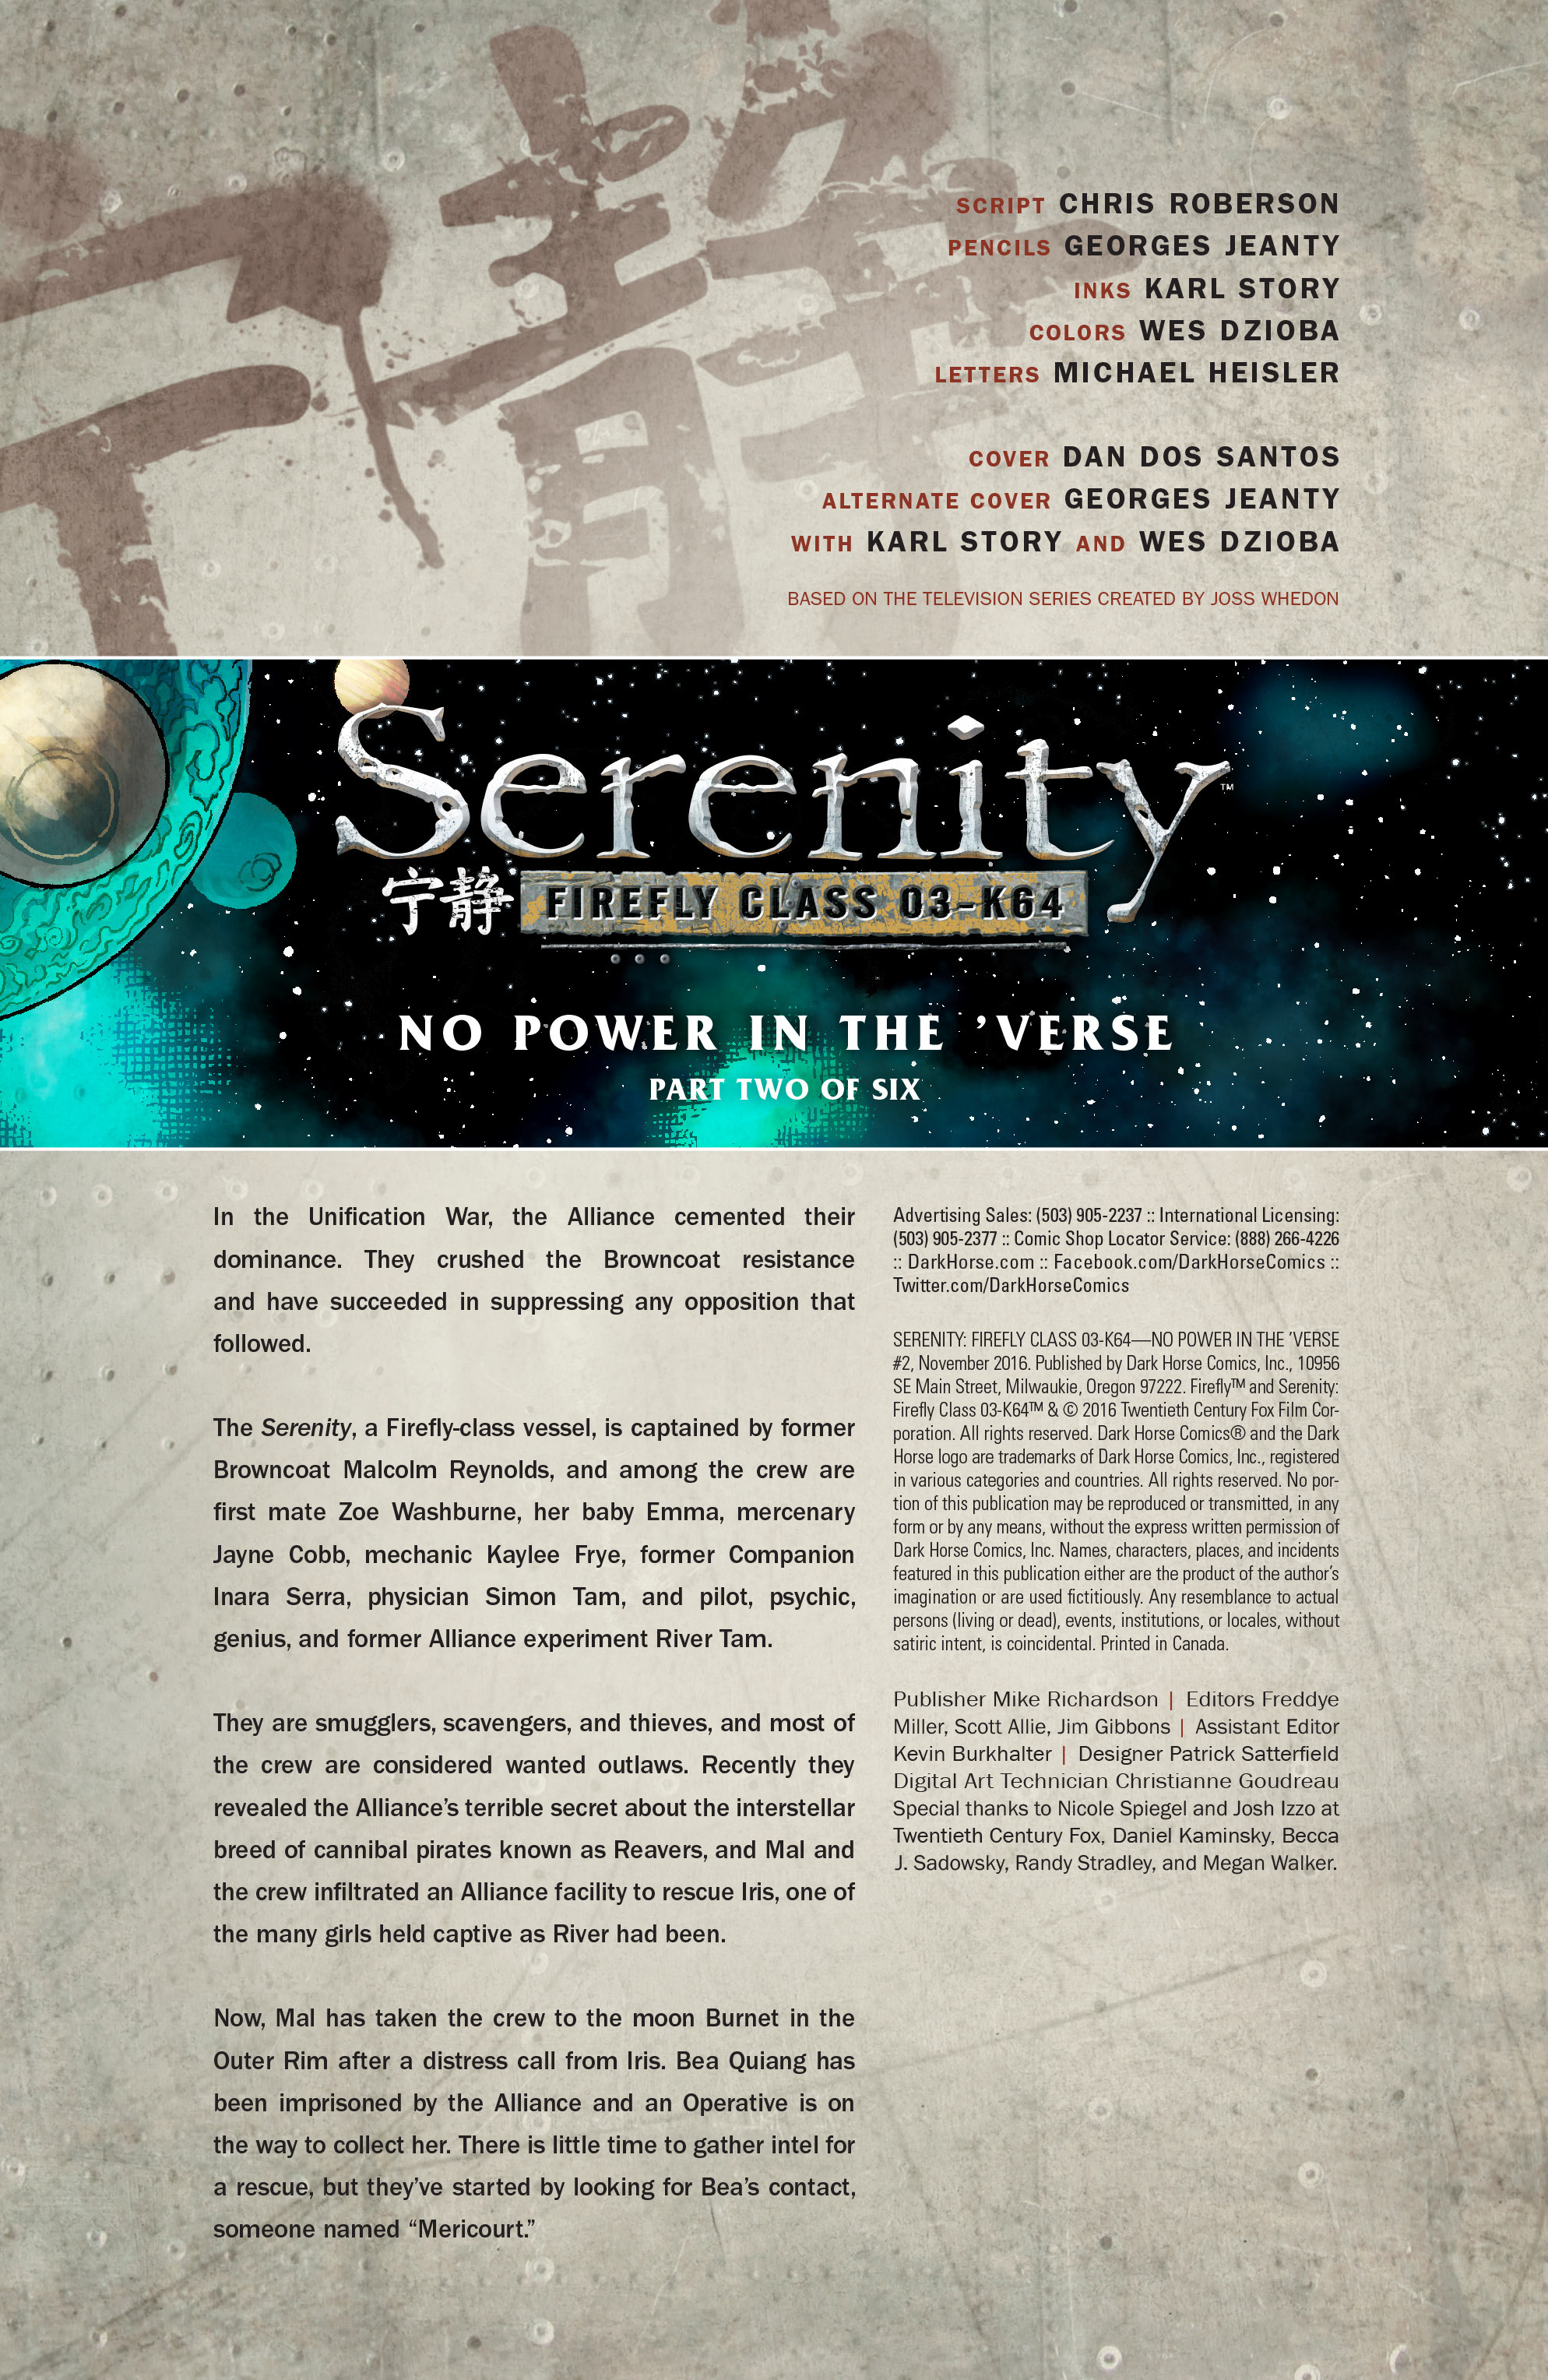 Read online Serenity: Firefly Class 03-K64 – No Power in the 'Verse comic -  Issue #2 - 3